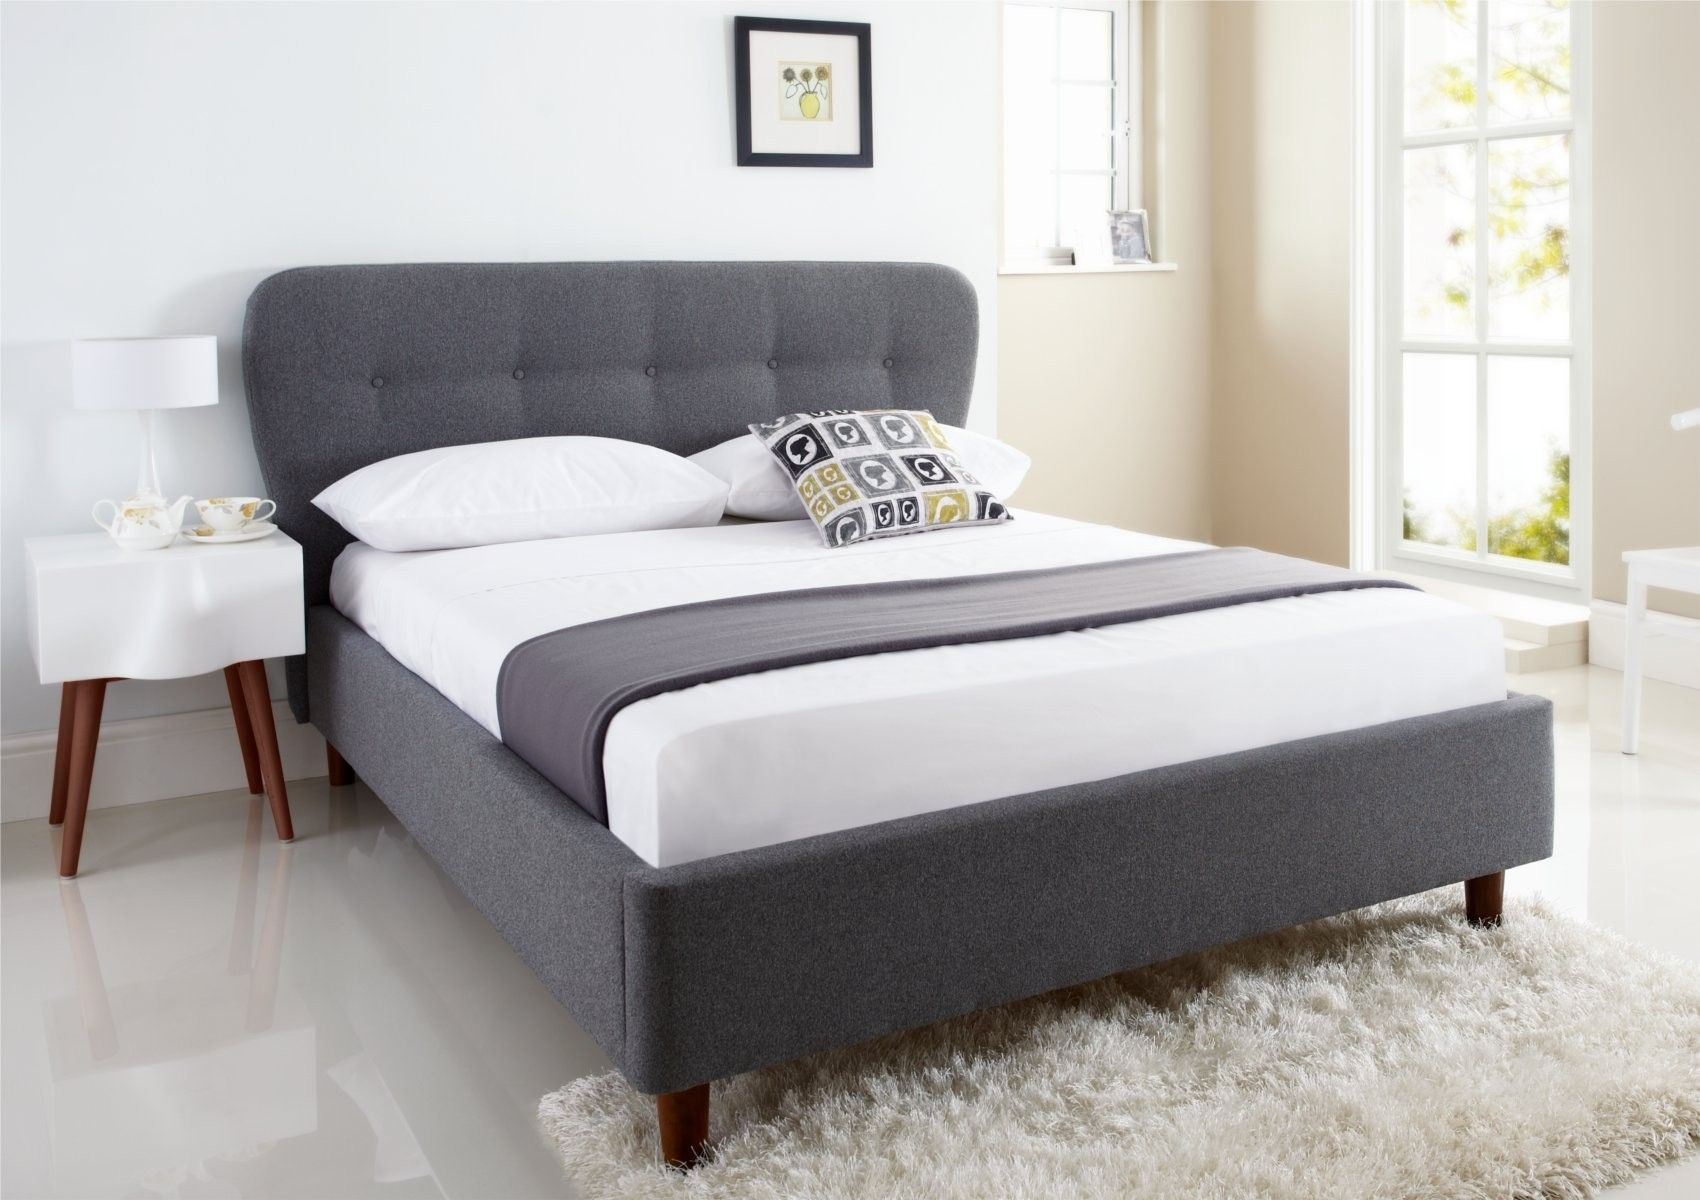 Oslo Upholstered Bed Frame - Upholstered Beds - Beds | bedroom ...